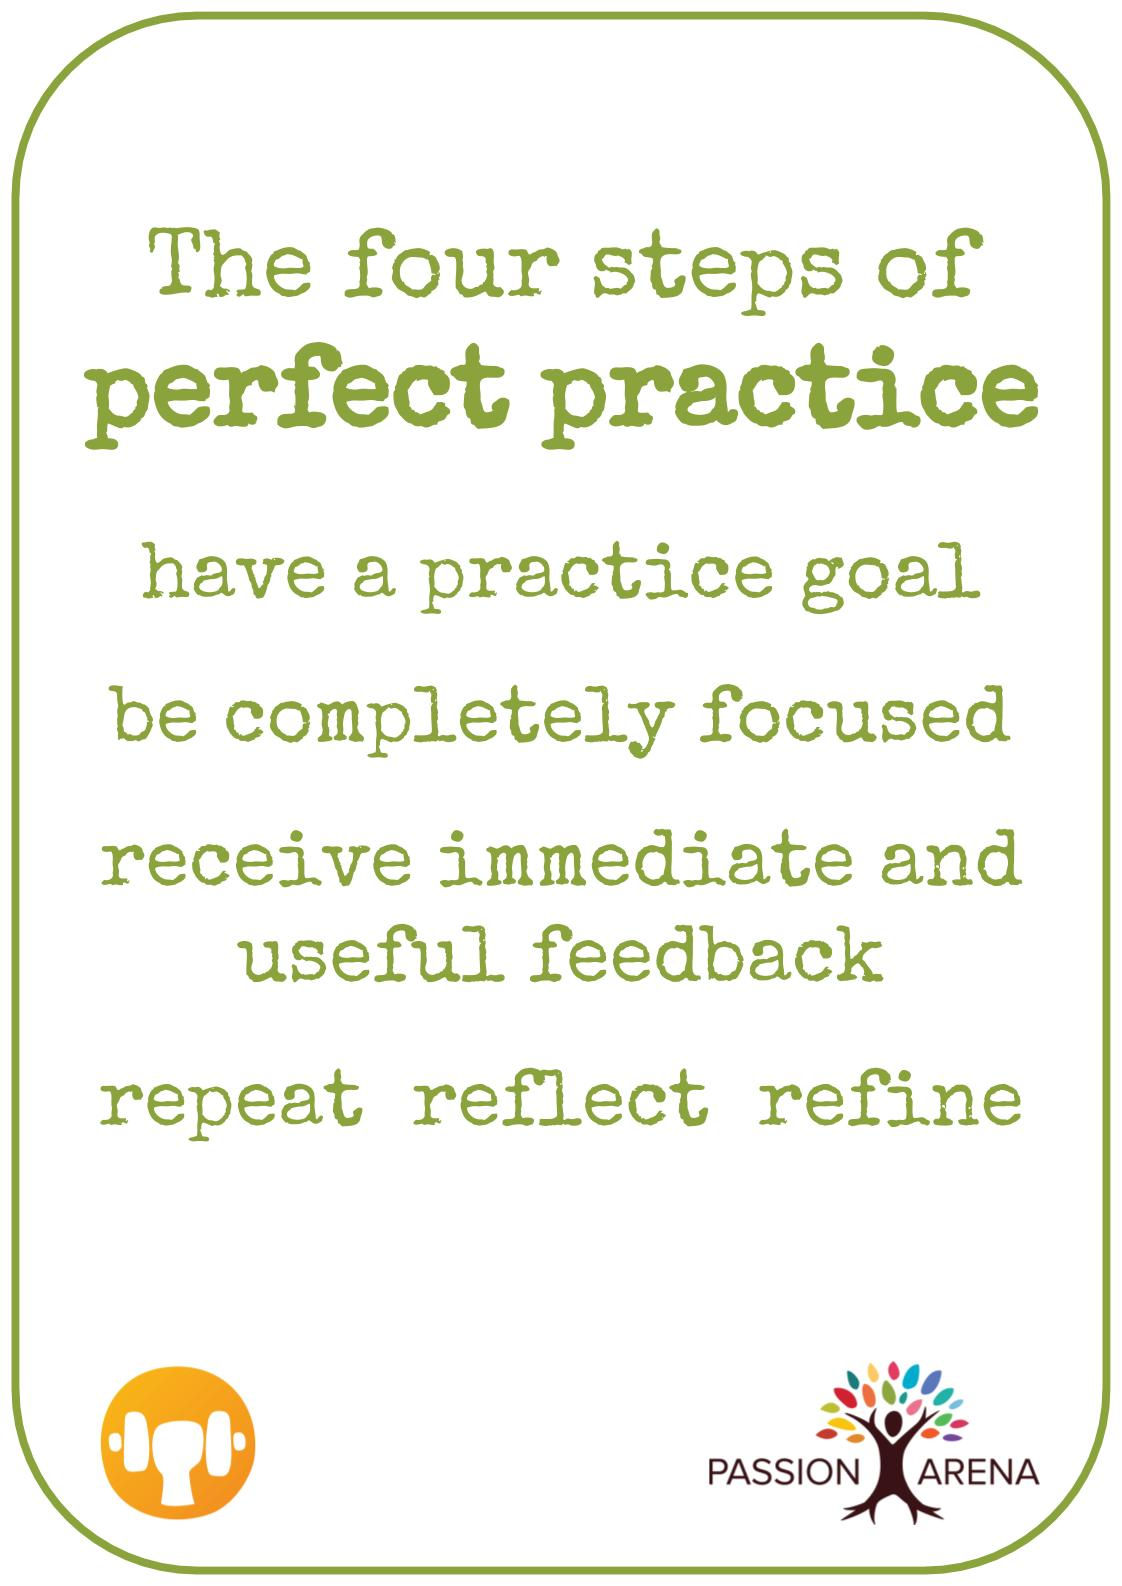 Intro-1-14. What exactly is perfect practice?